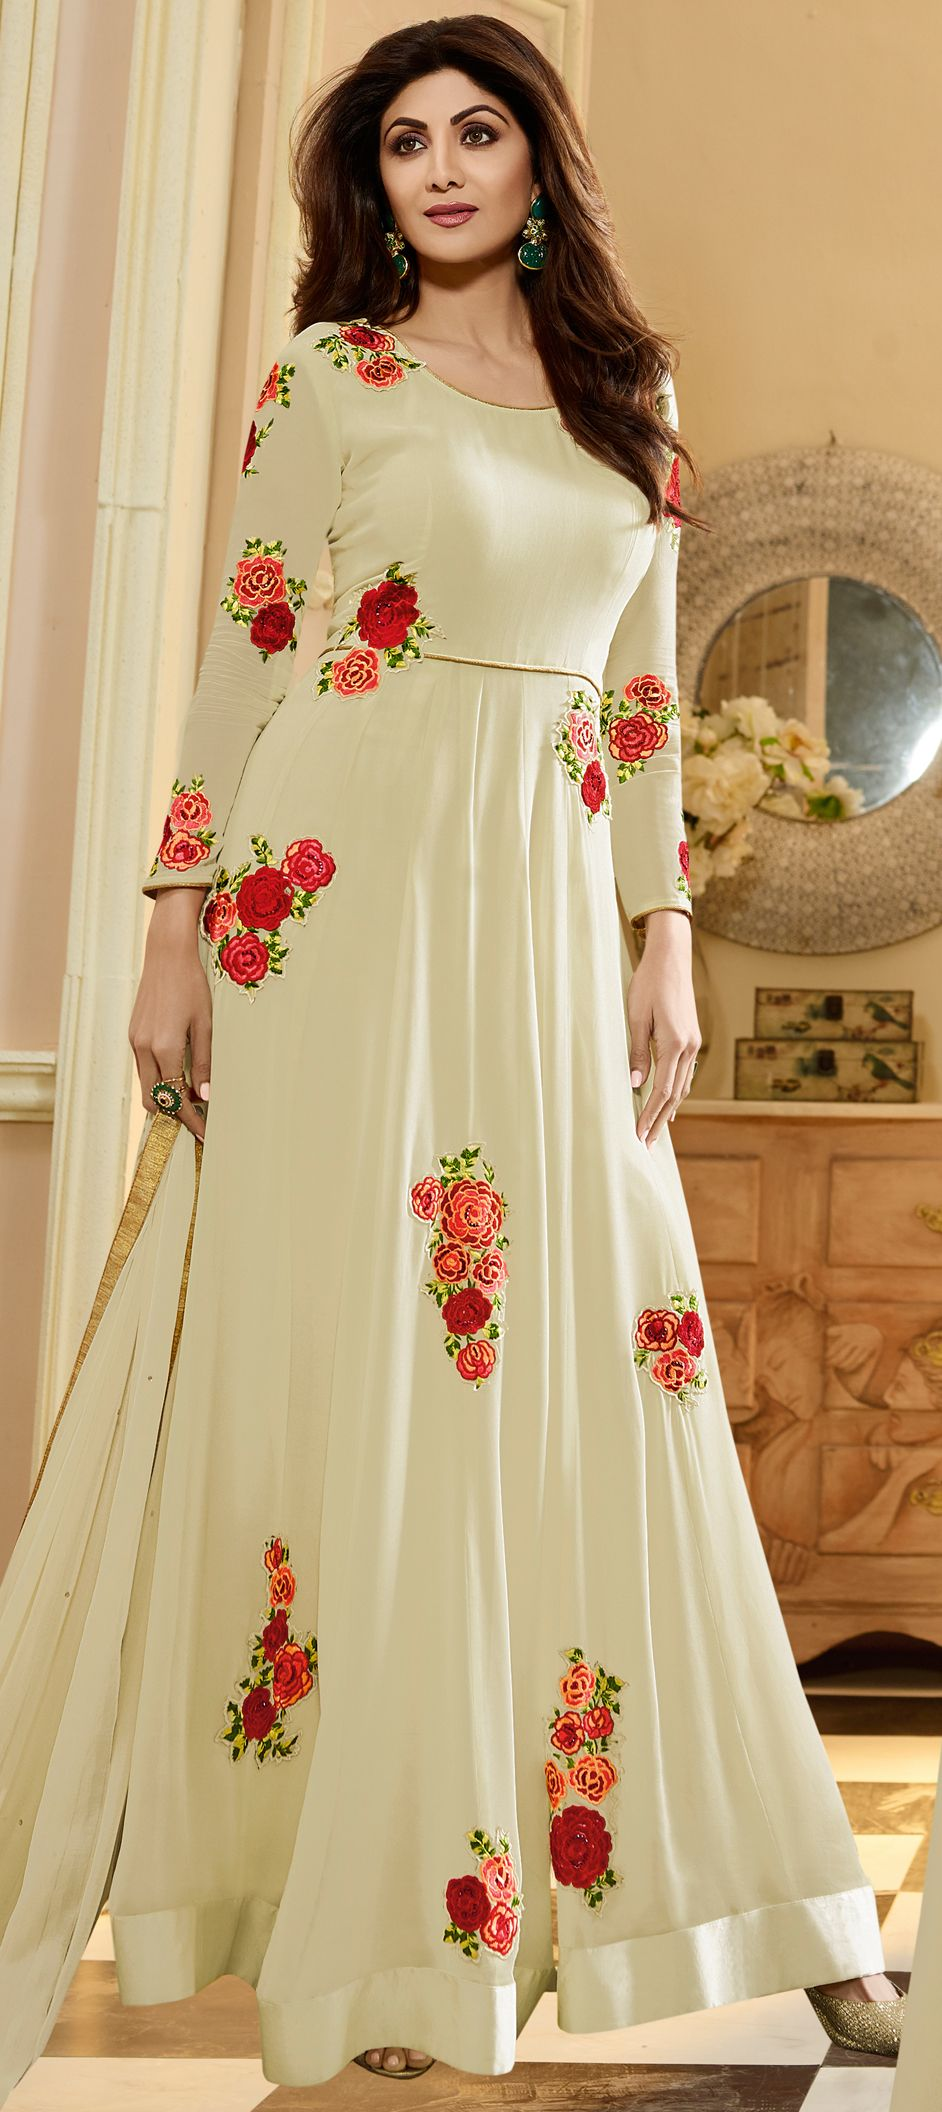 50a8b281ad9 498471  White and Off White color family semi-stiched Bollywood Salwar  Kameez .